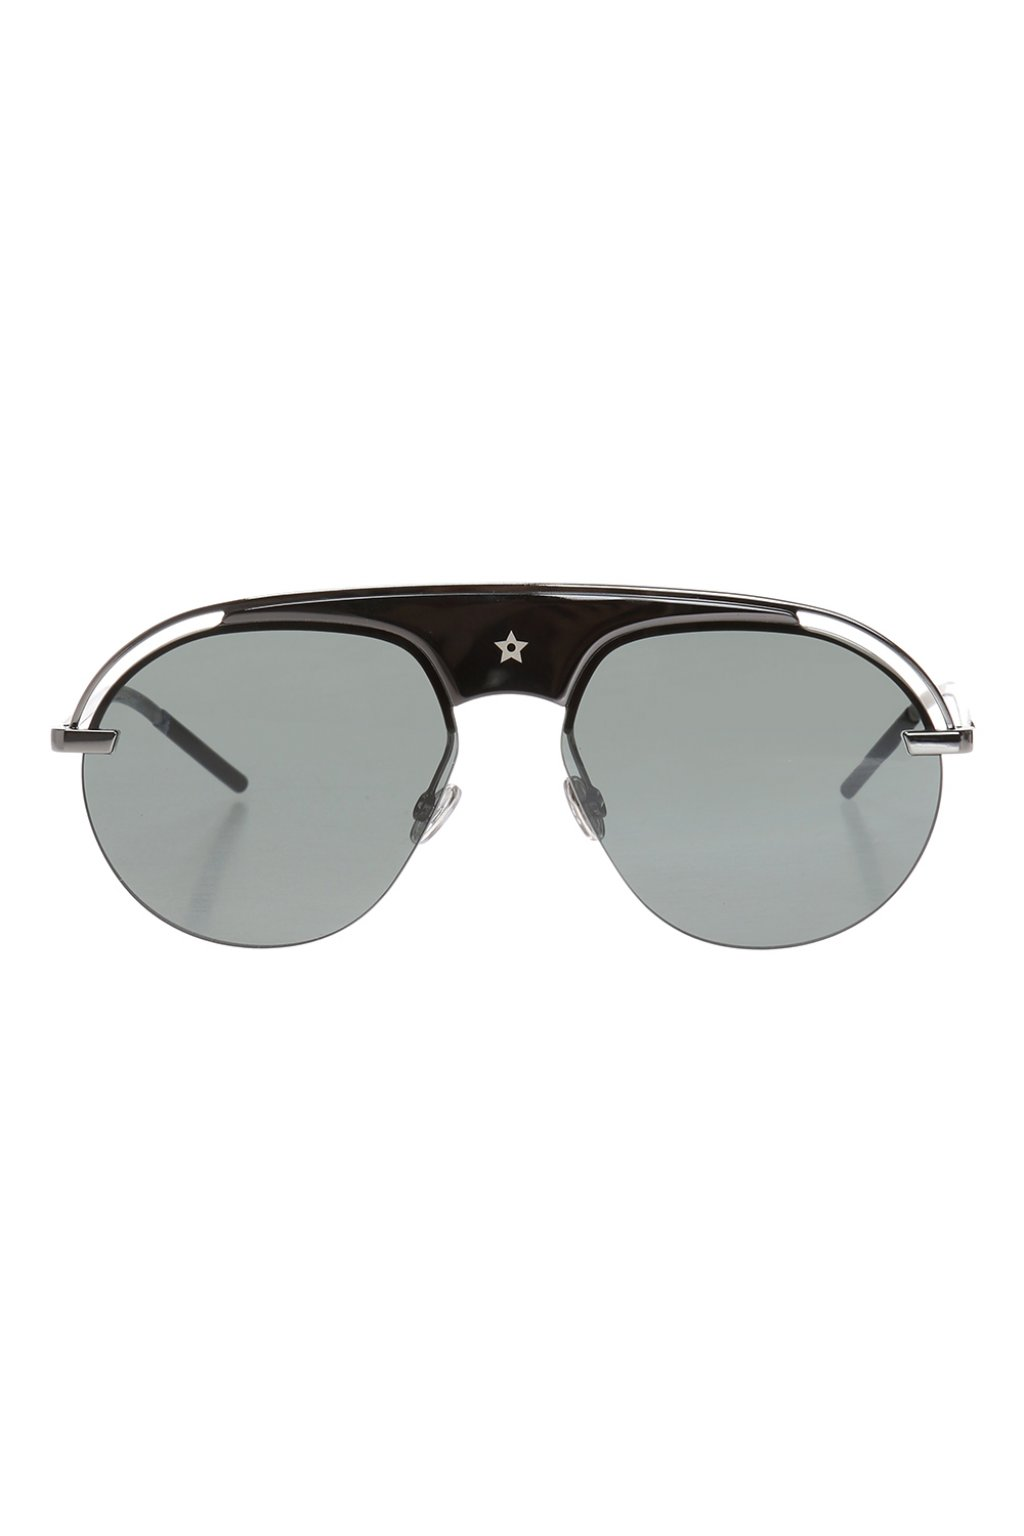 Dior 'Dio(r)evolution' sunglasses